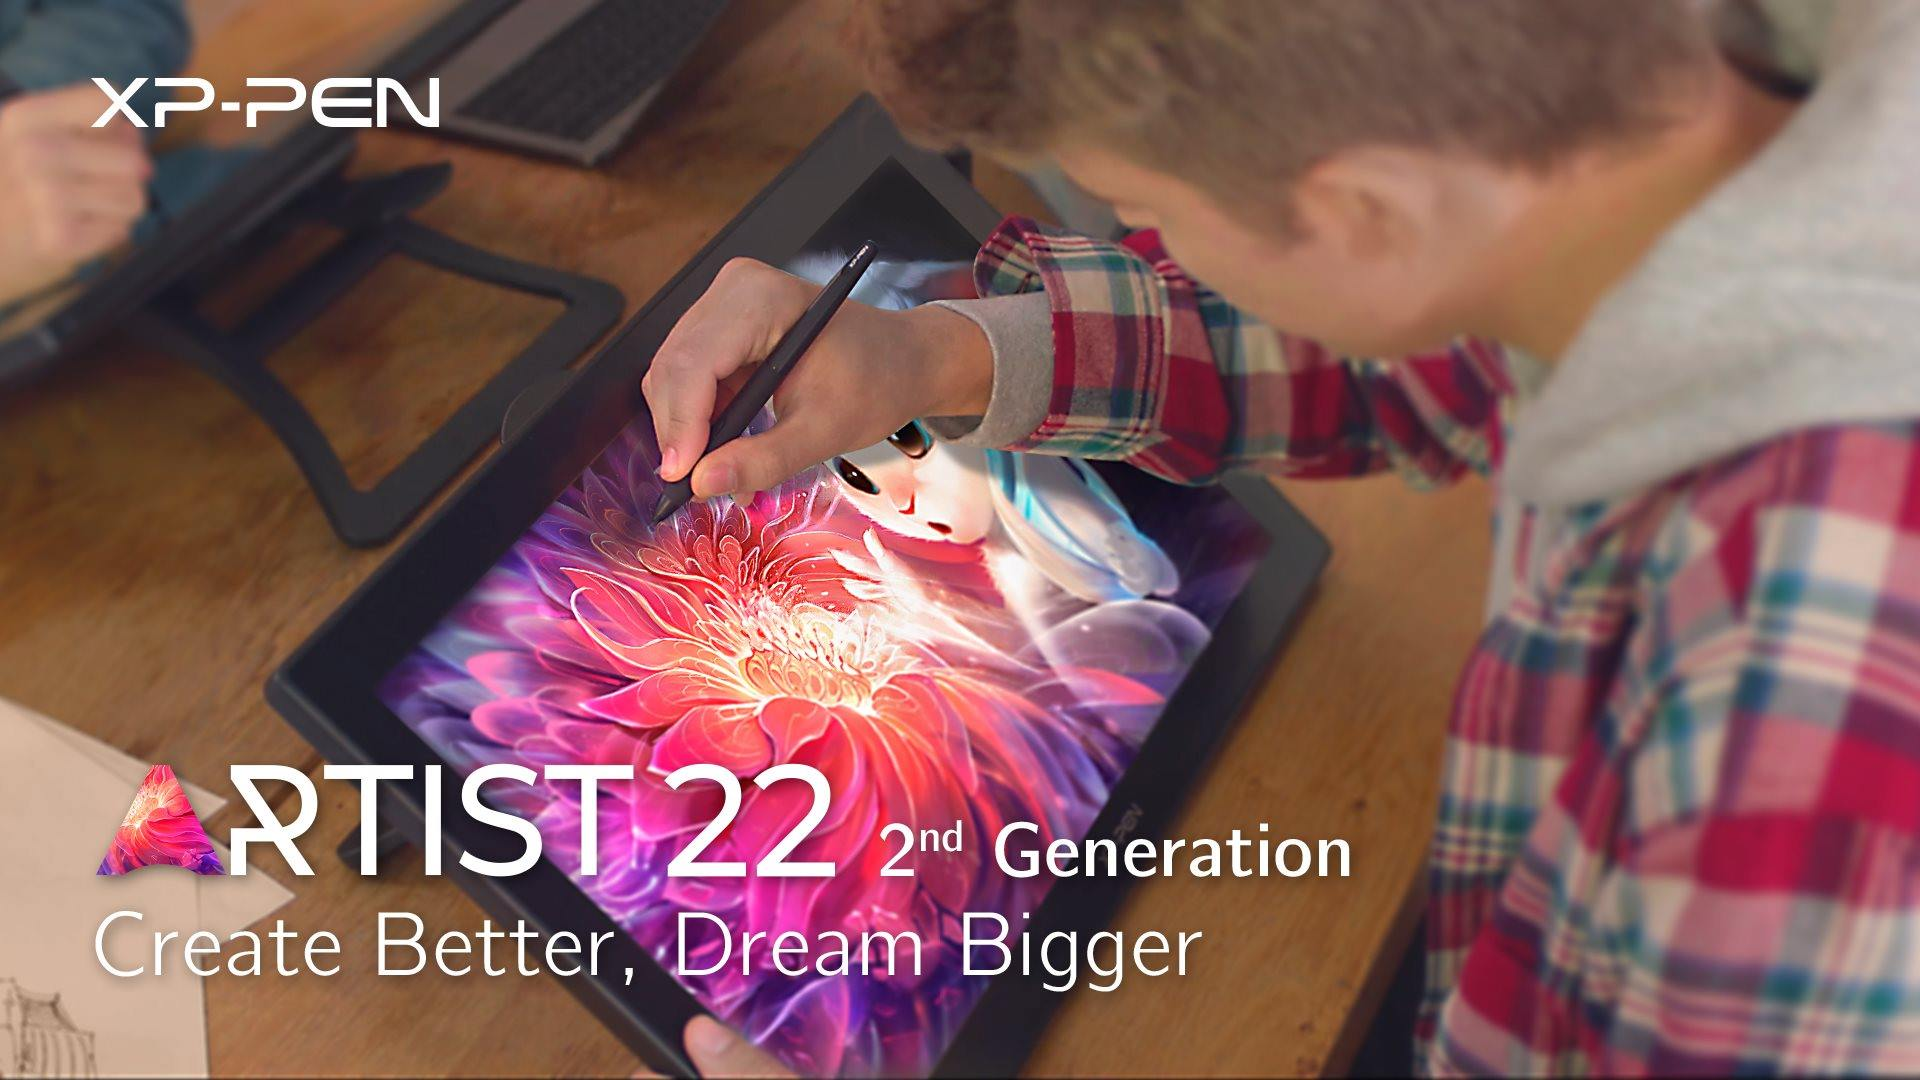 #Artist22secondGeneration always ready for your inspiration flow, and sync your creativity!